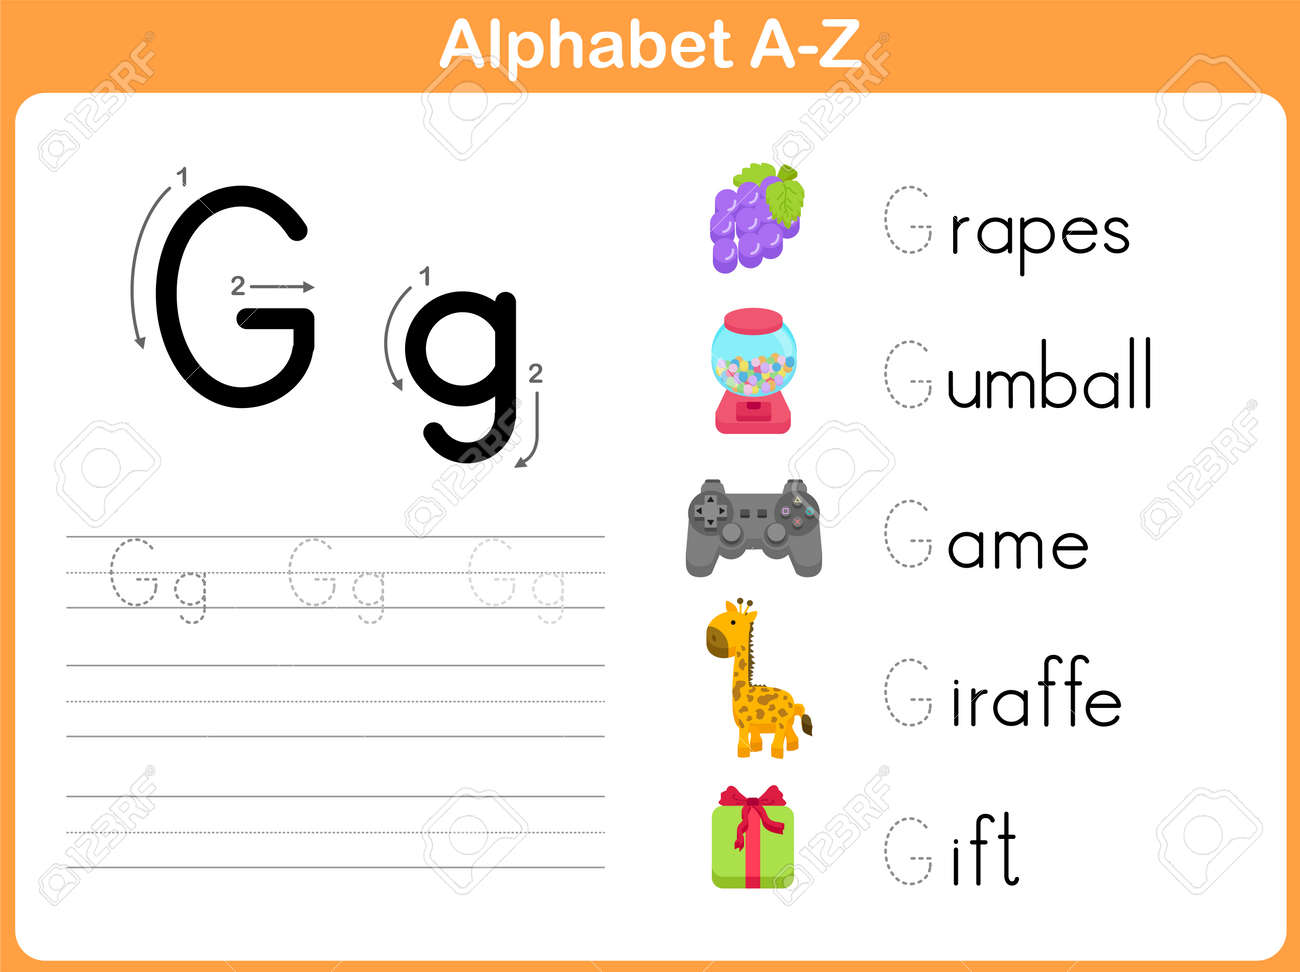 Pictures Alphabet Tracing Worksheets A Z - Beatlesblogcarnival worksheets for teachers, printable worksheets, multiplication, free worksheets, and math worksheets Tracing Letters A Z Worksheet 972 x 1300